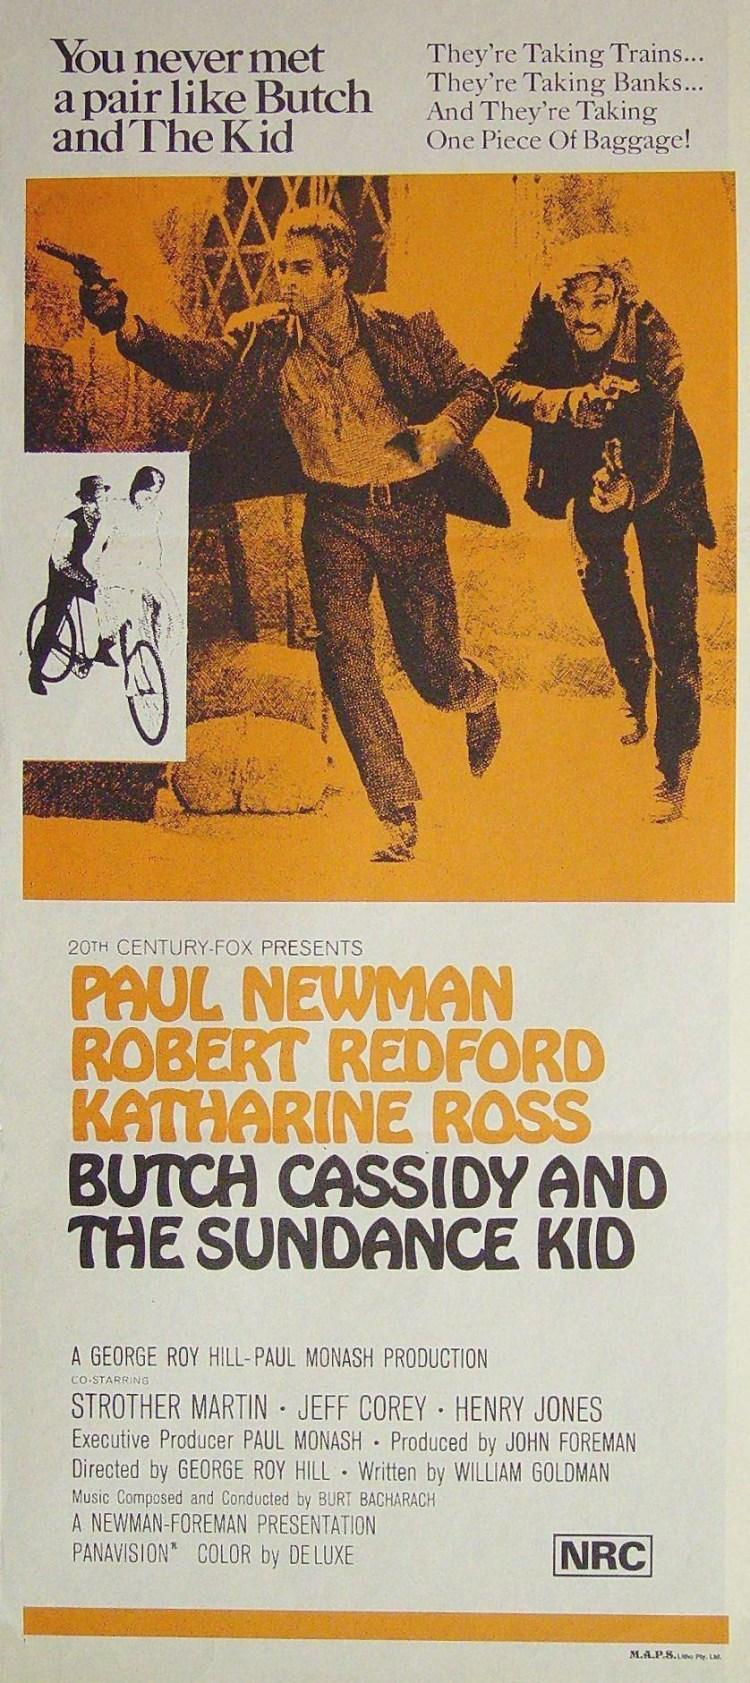 butch cassidy and the sundance kid essay In butch cassidy and the sundance kid there's that great bit about the super-posse that chases in a sublime and devastating essay for the independent.